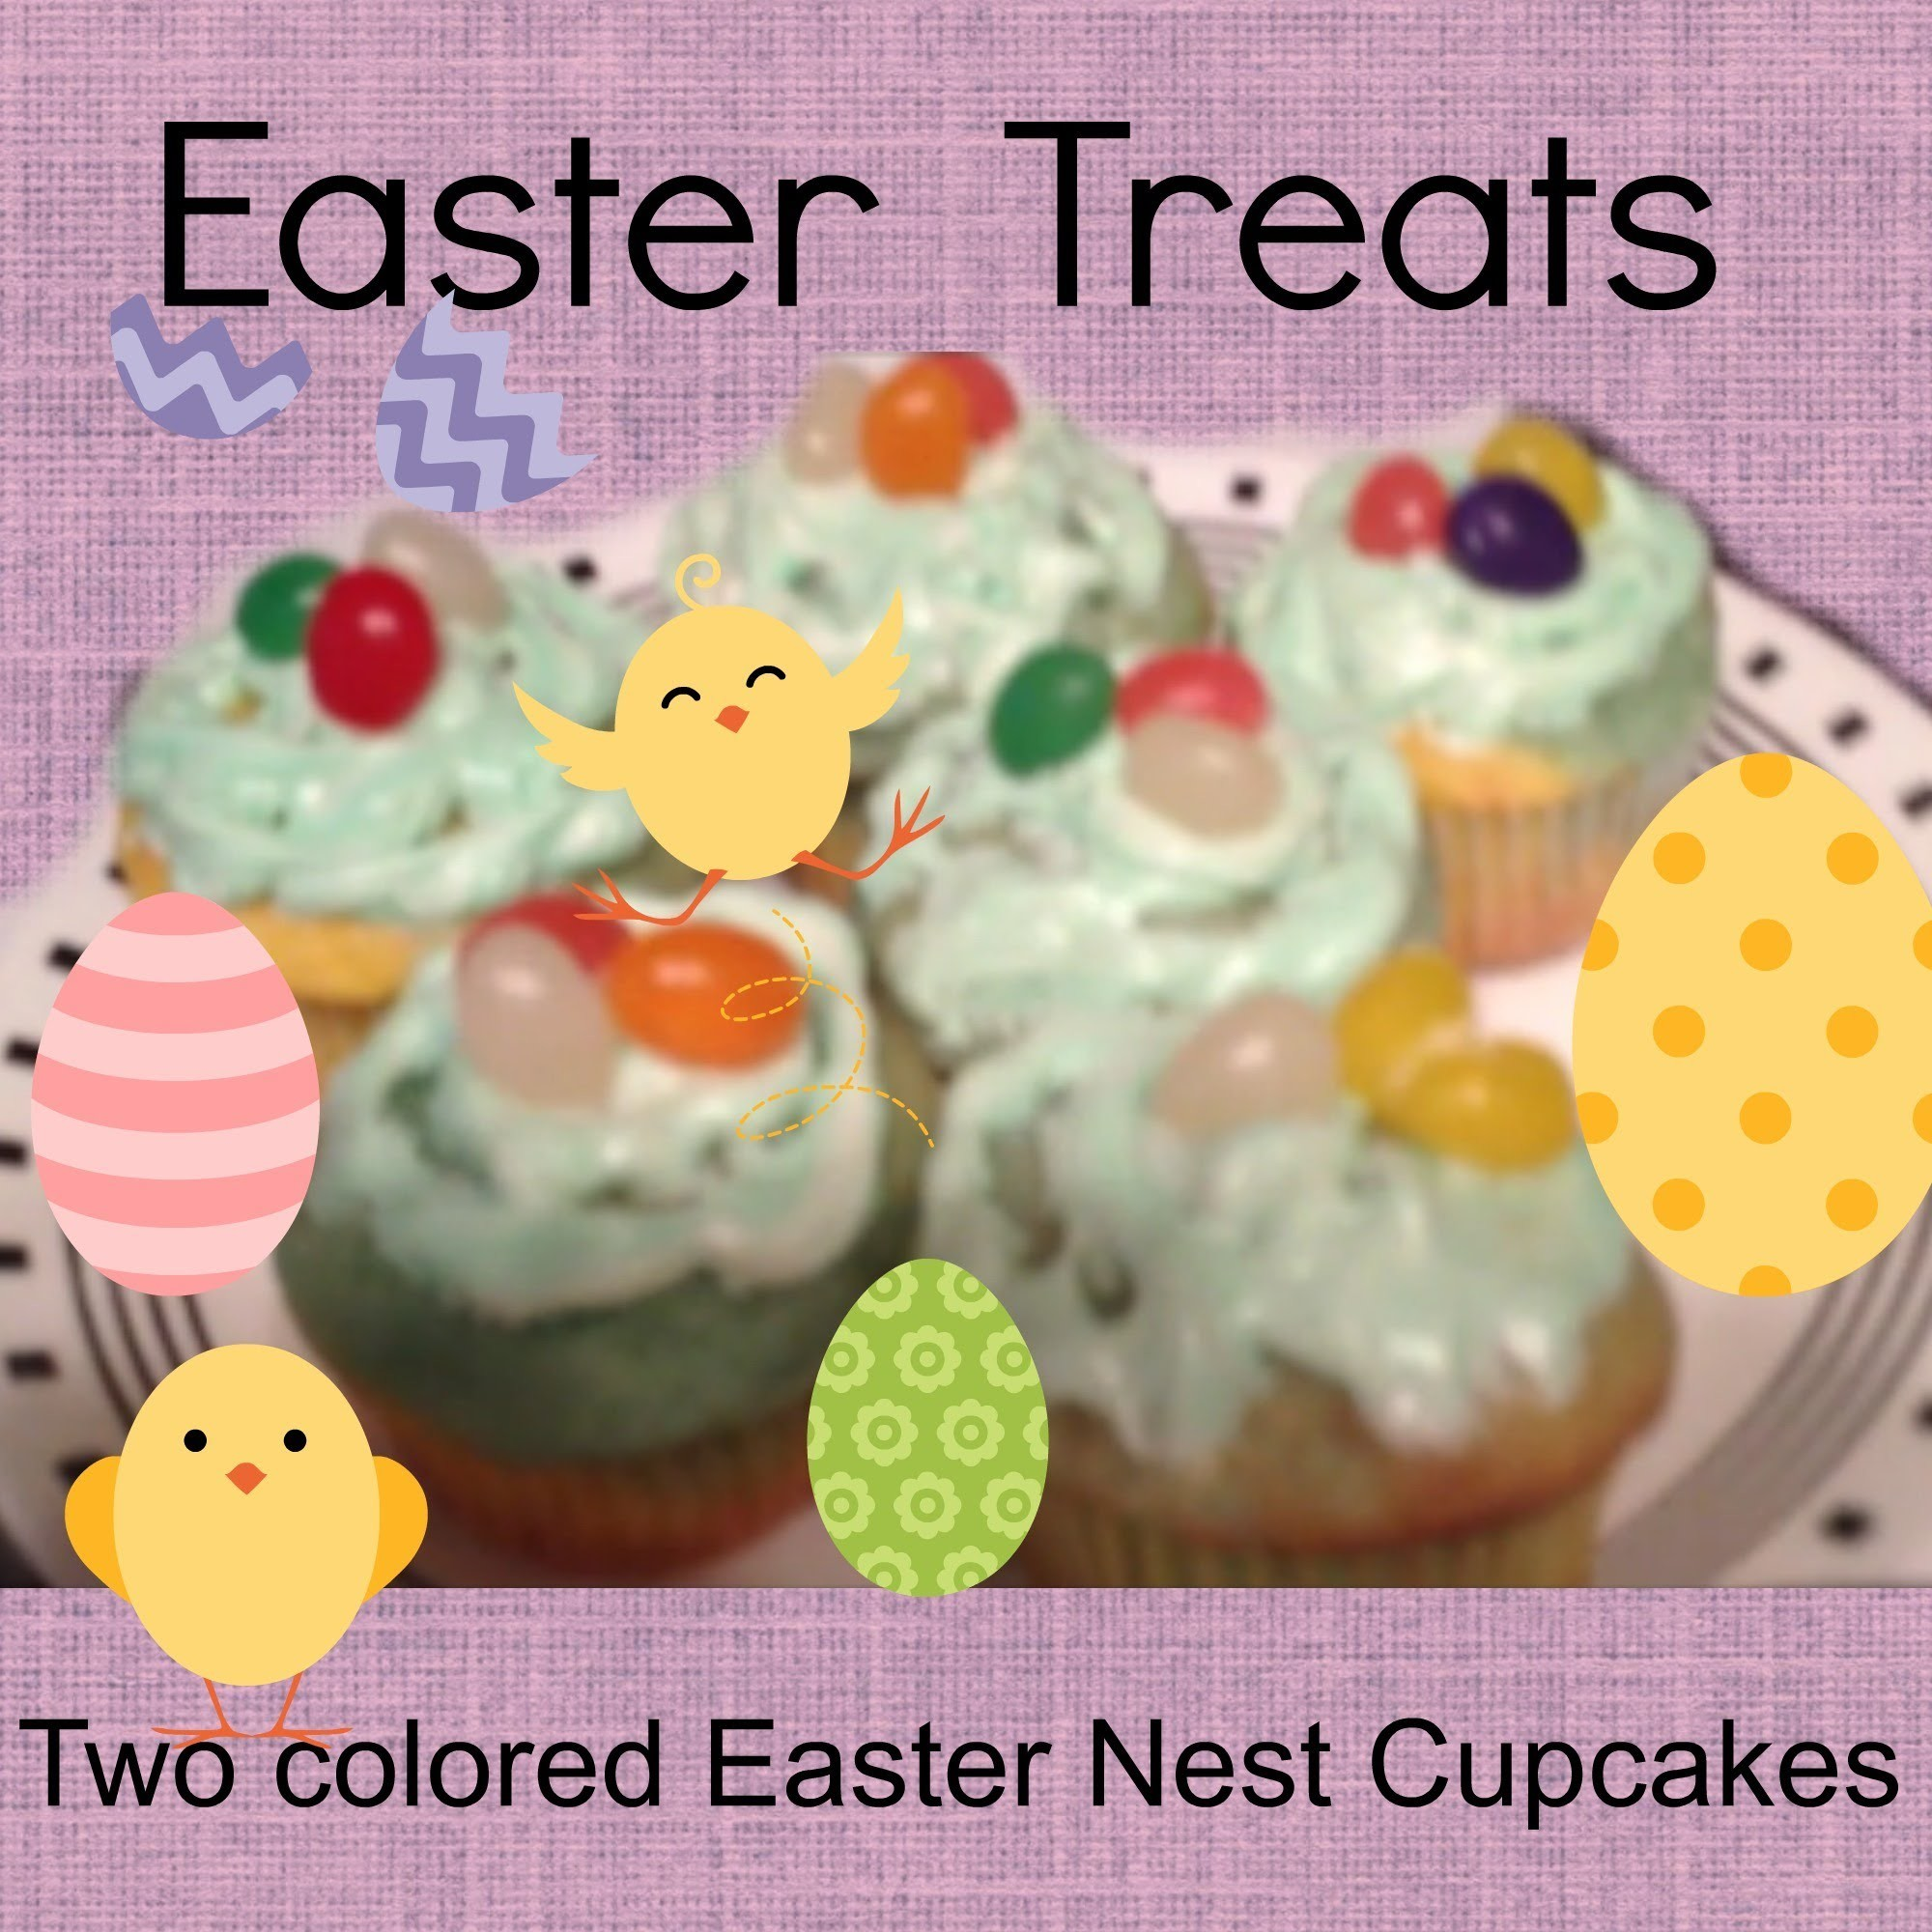 Easter Nest Cupcakes (Two colors in one) (DIY)